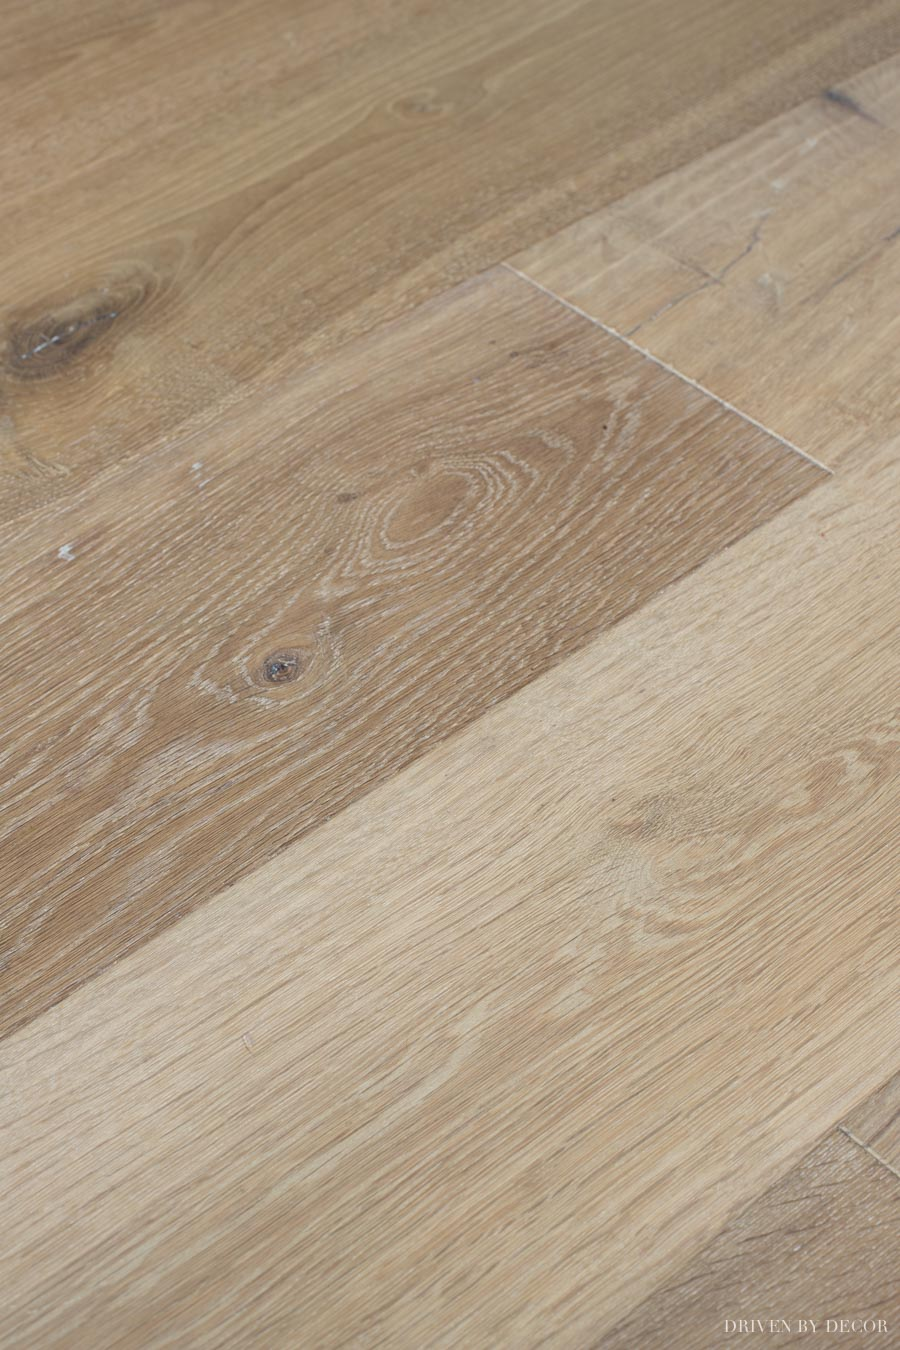 In love with this flooring! Hallmark's Malibu Oak - lots of details in more pics included in post!